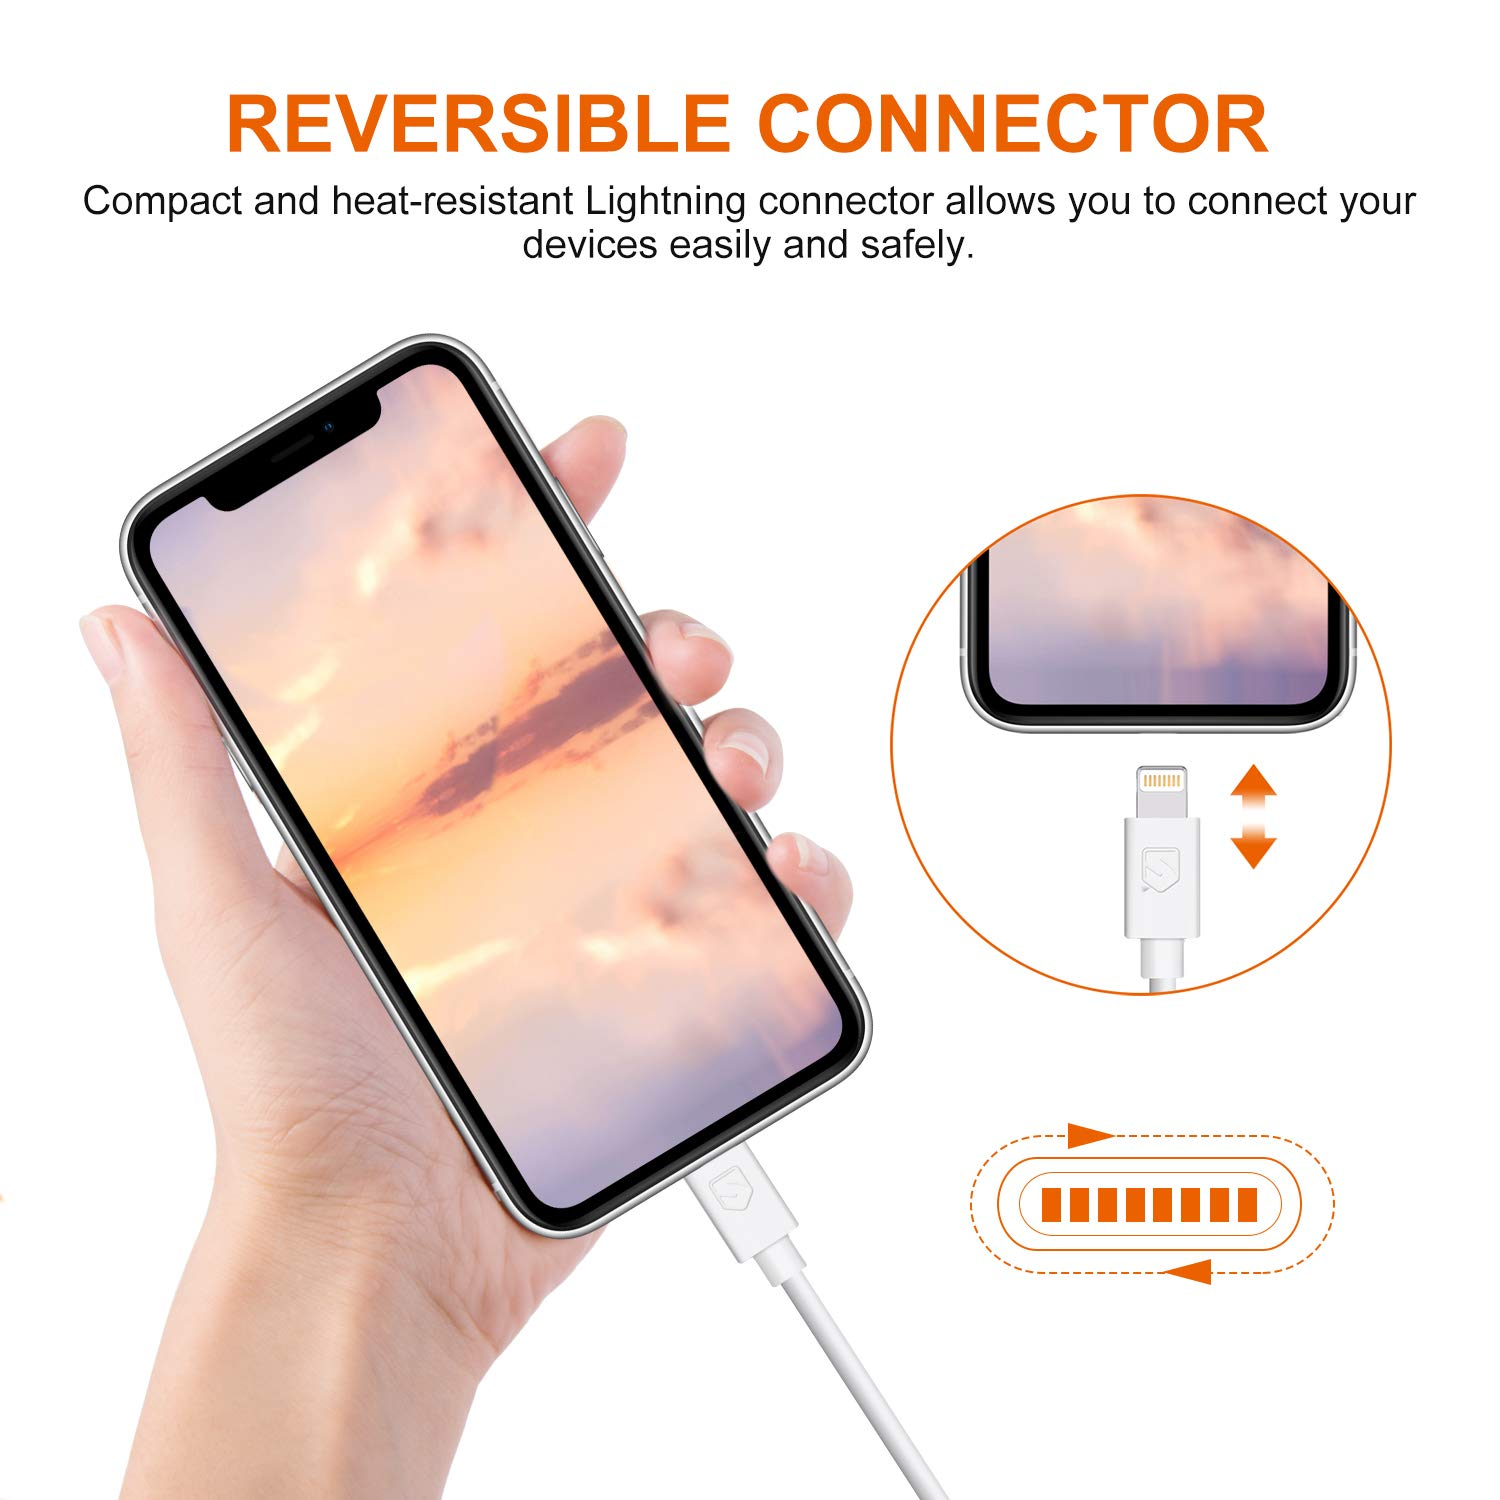 iPhone Charger Cable Sundix 4351486114 White 4Pack 6ft USB Charging /& Syncing Cord Replacement for iPhone X 8 7 6s 6 Plus iPod iPad Mini Air Pro Cables 46white